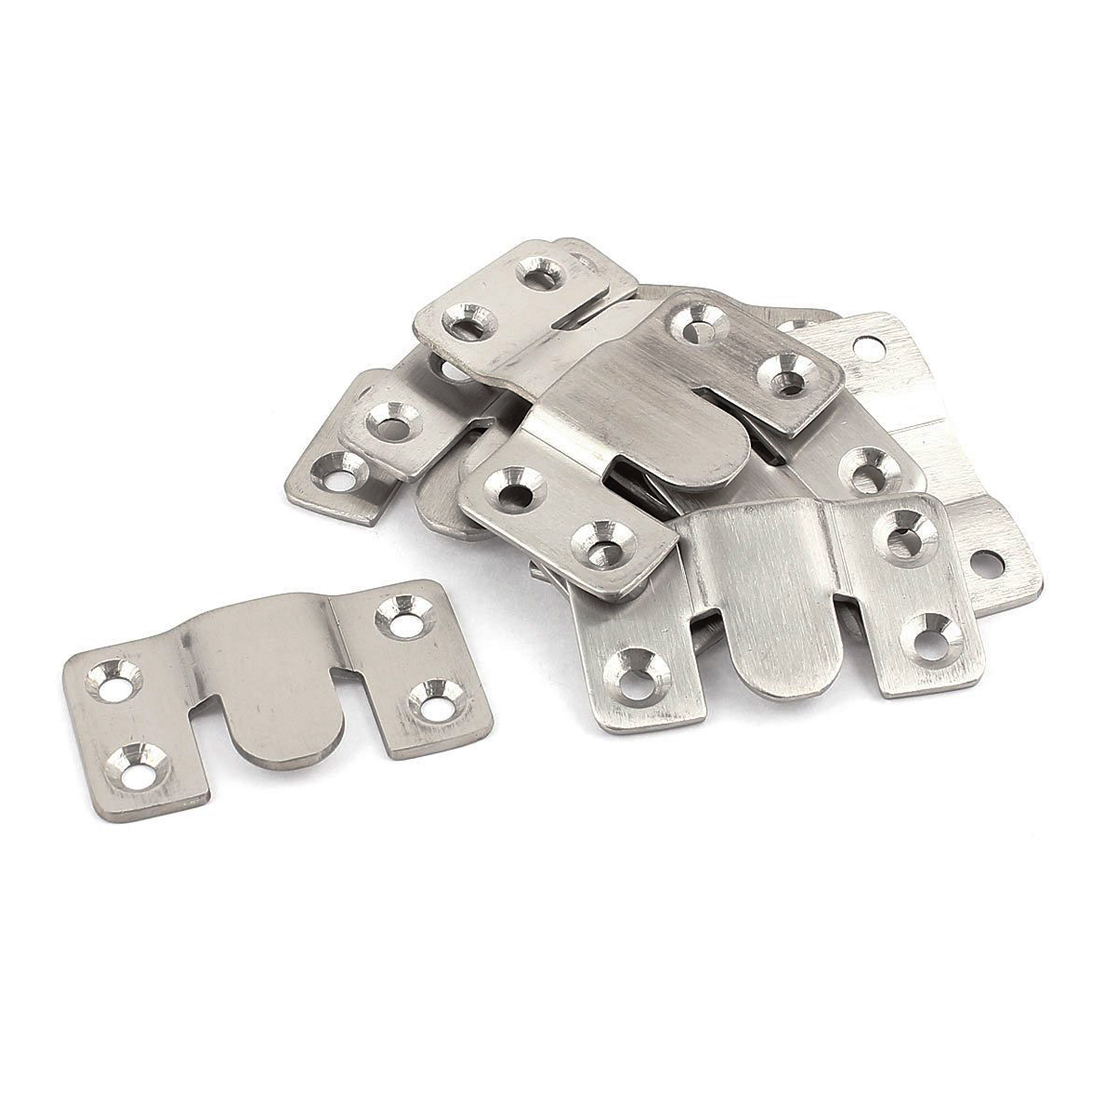 Furniture sectional interlock style sofa connector 10pcs for Sofa connectors